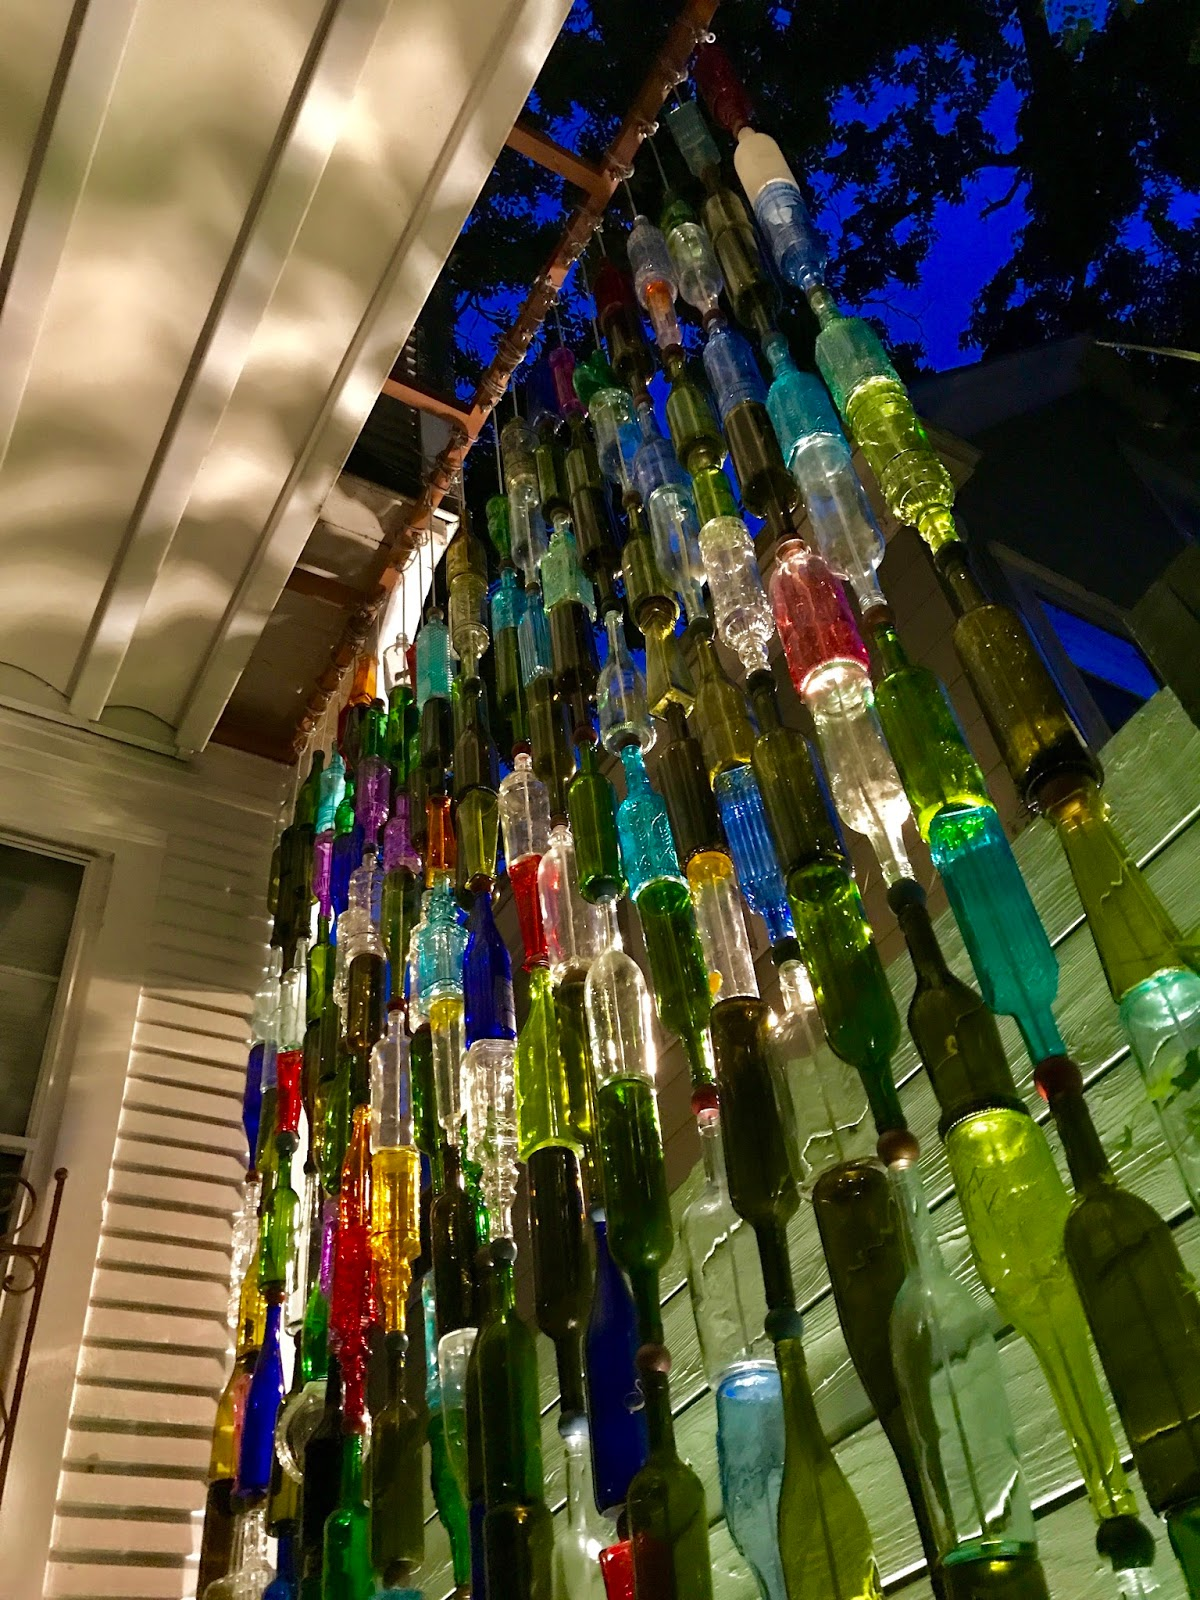 Garden art - a brilliant wine bottle wall